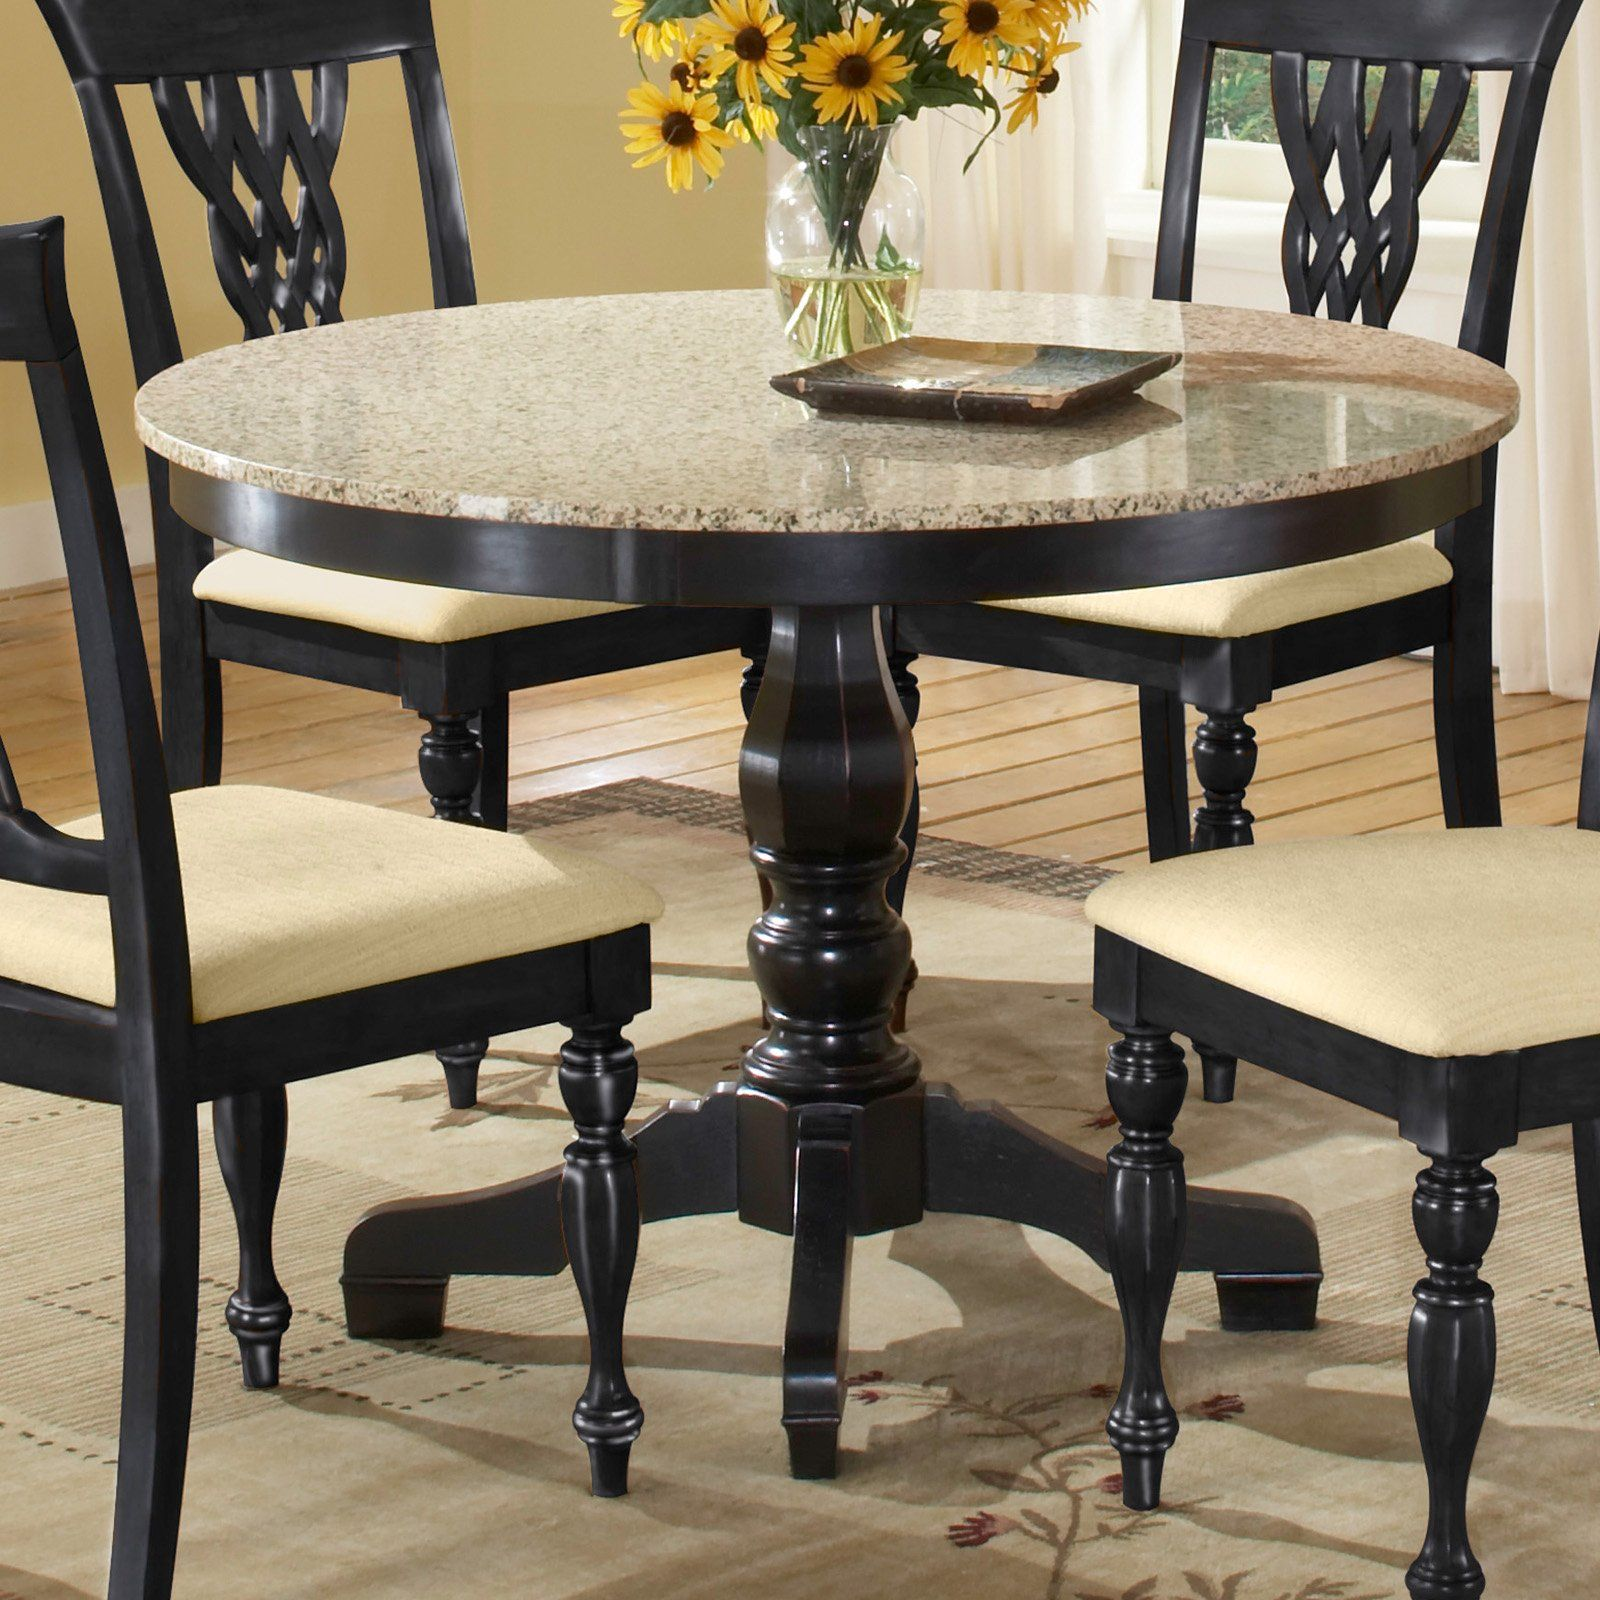 Have To Have It Embassy Round Pedestal Table With 42 Inch Granite Top Black Hayneedle Granite Dining Table Dining Table Marble Round Dining Room Sets